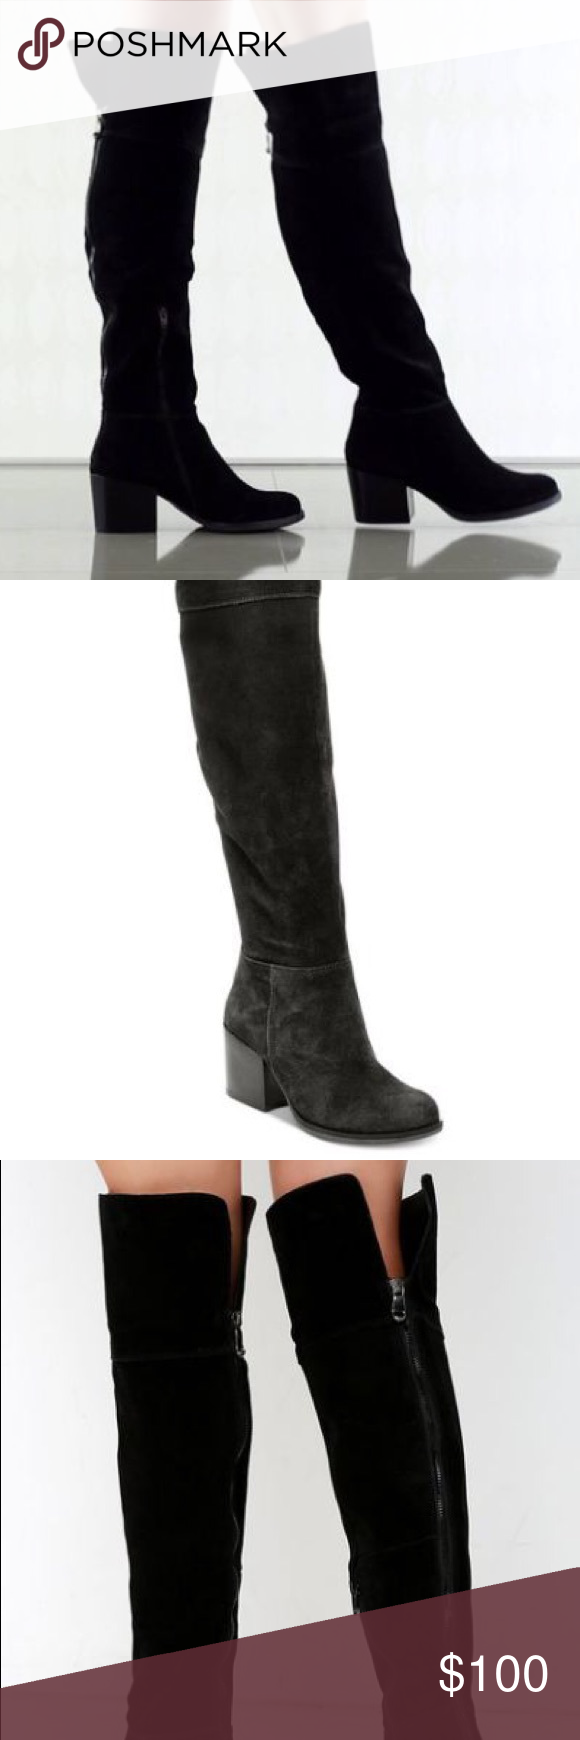 2834a6b23be Steve Madden Orabela Over the Knee Boot Never Been Worn